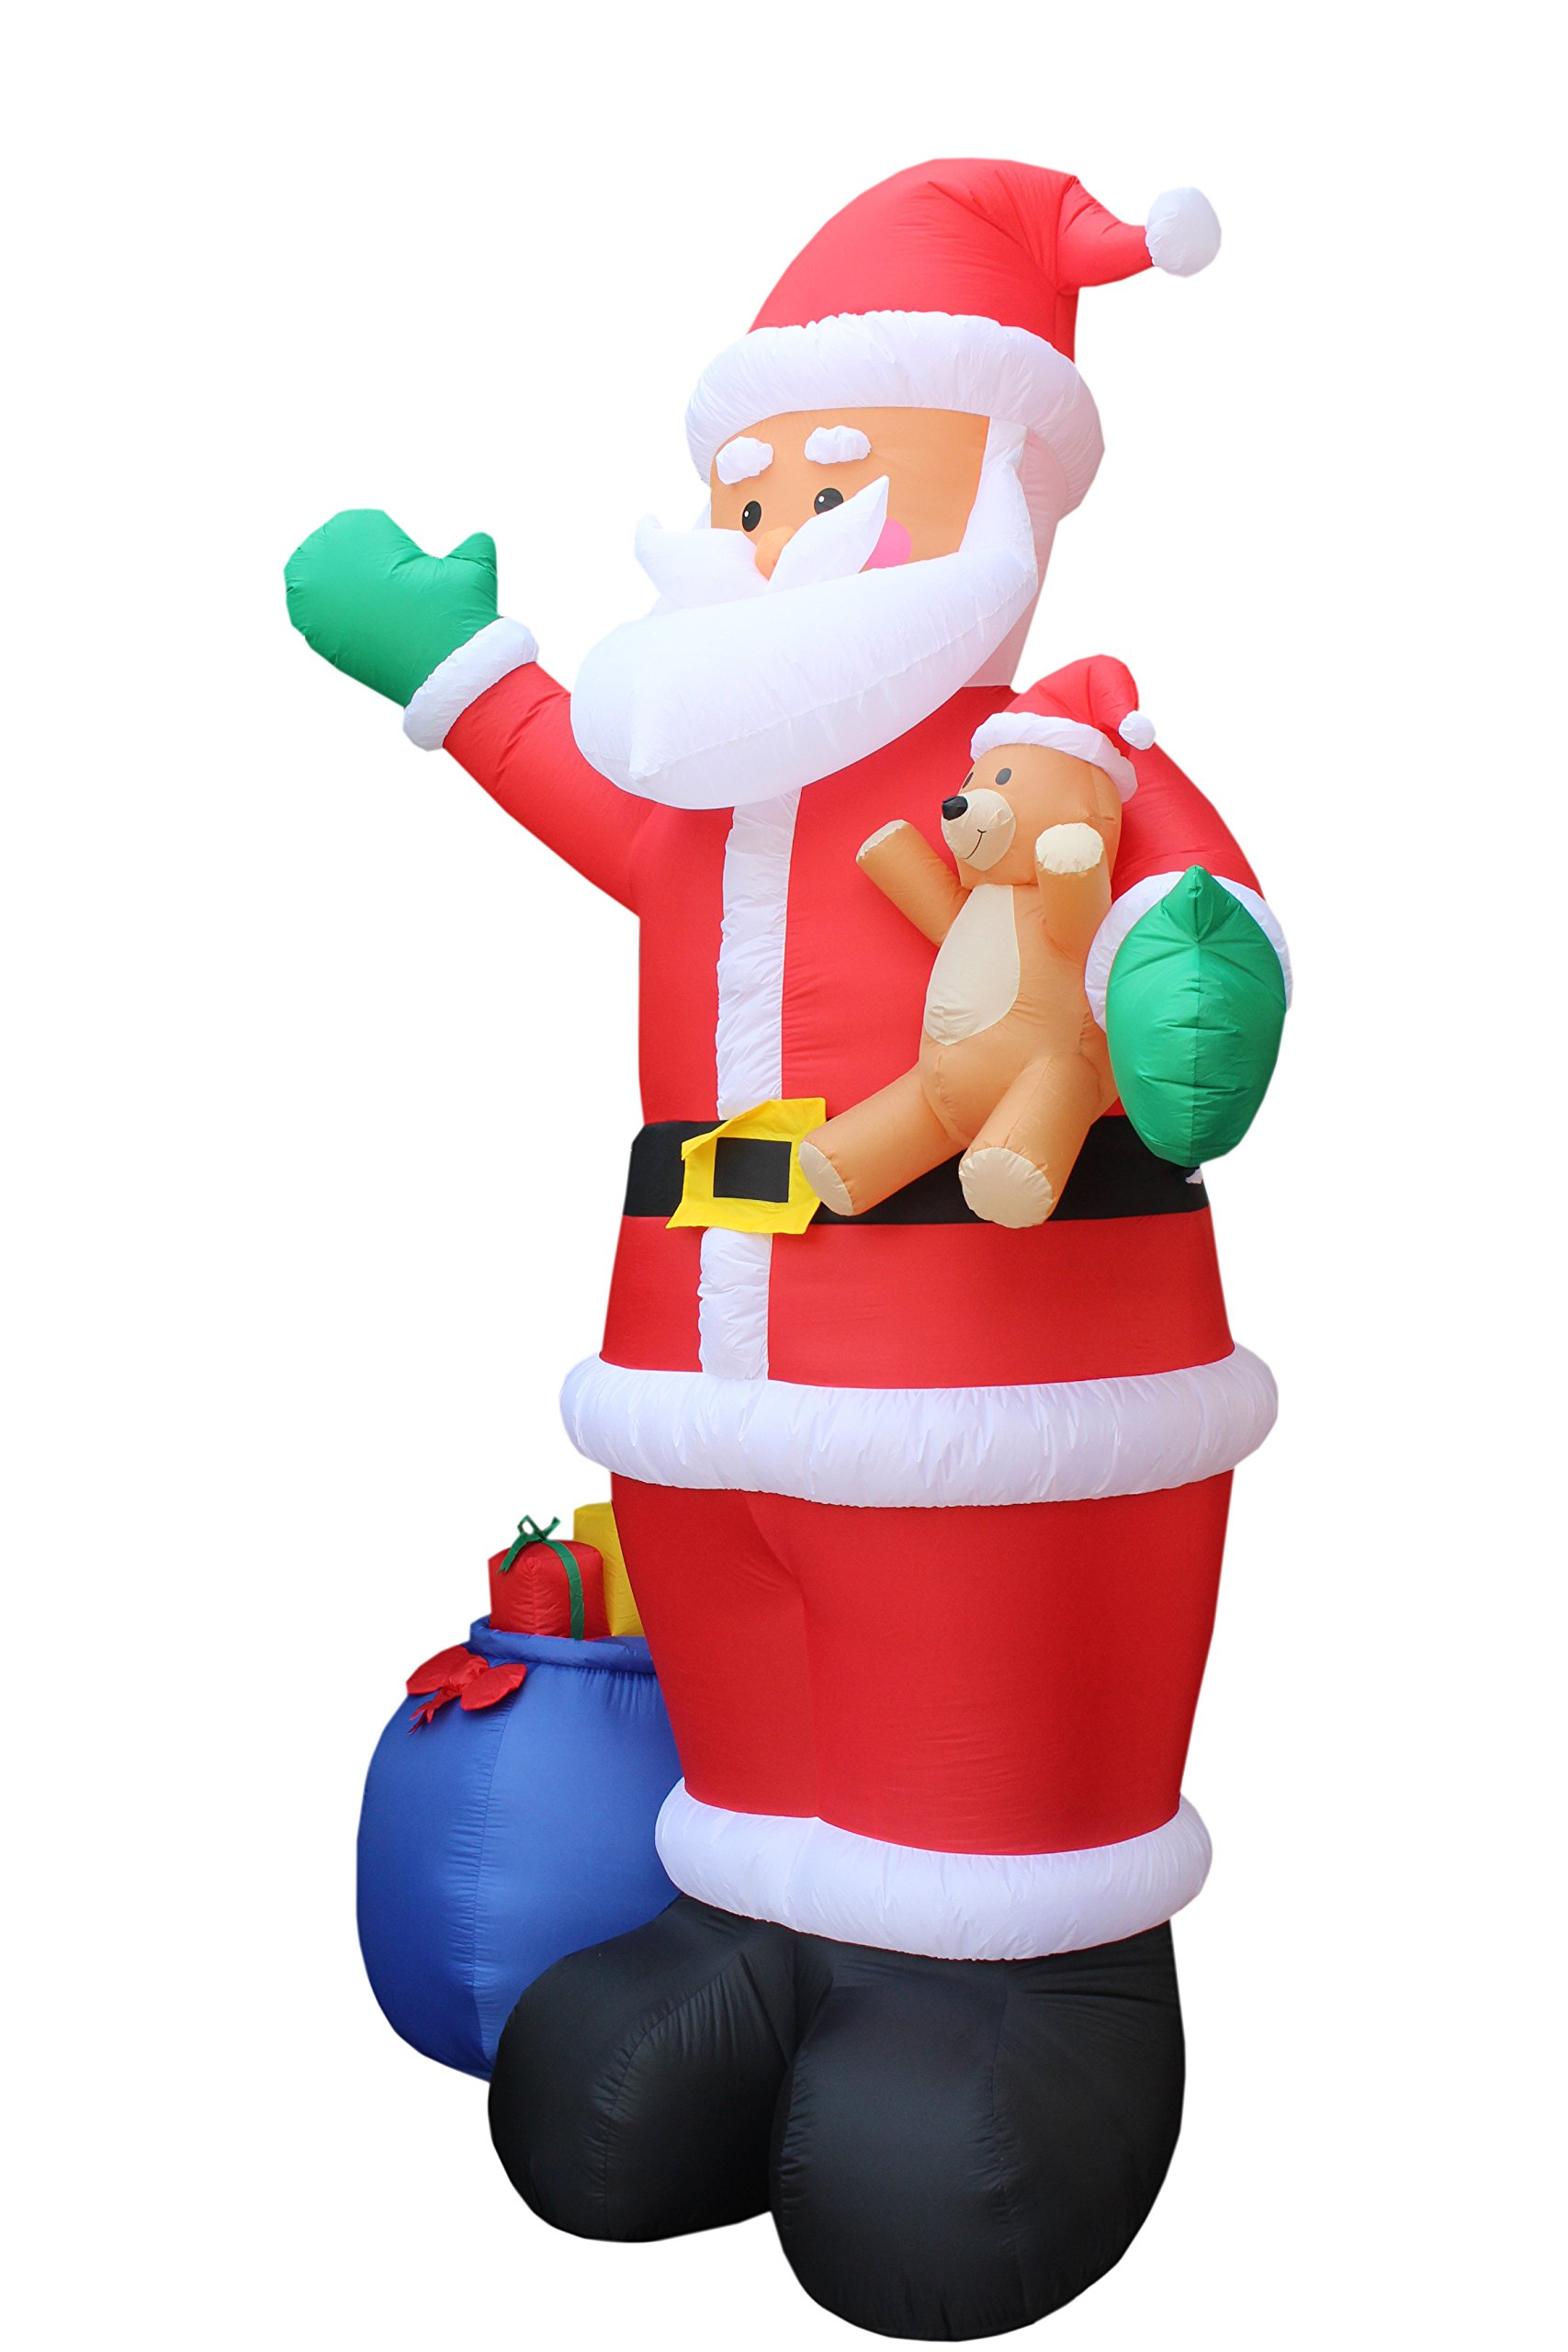 12 Foot Christmas Inflatable Santa Claus with Gift Bag and Bear Yard Garden Decoration by BZB Goods (Image #2)